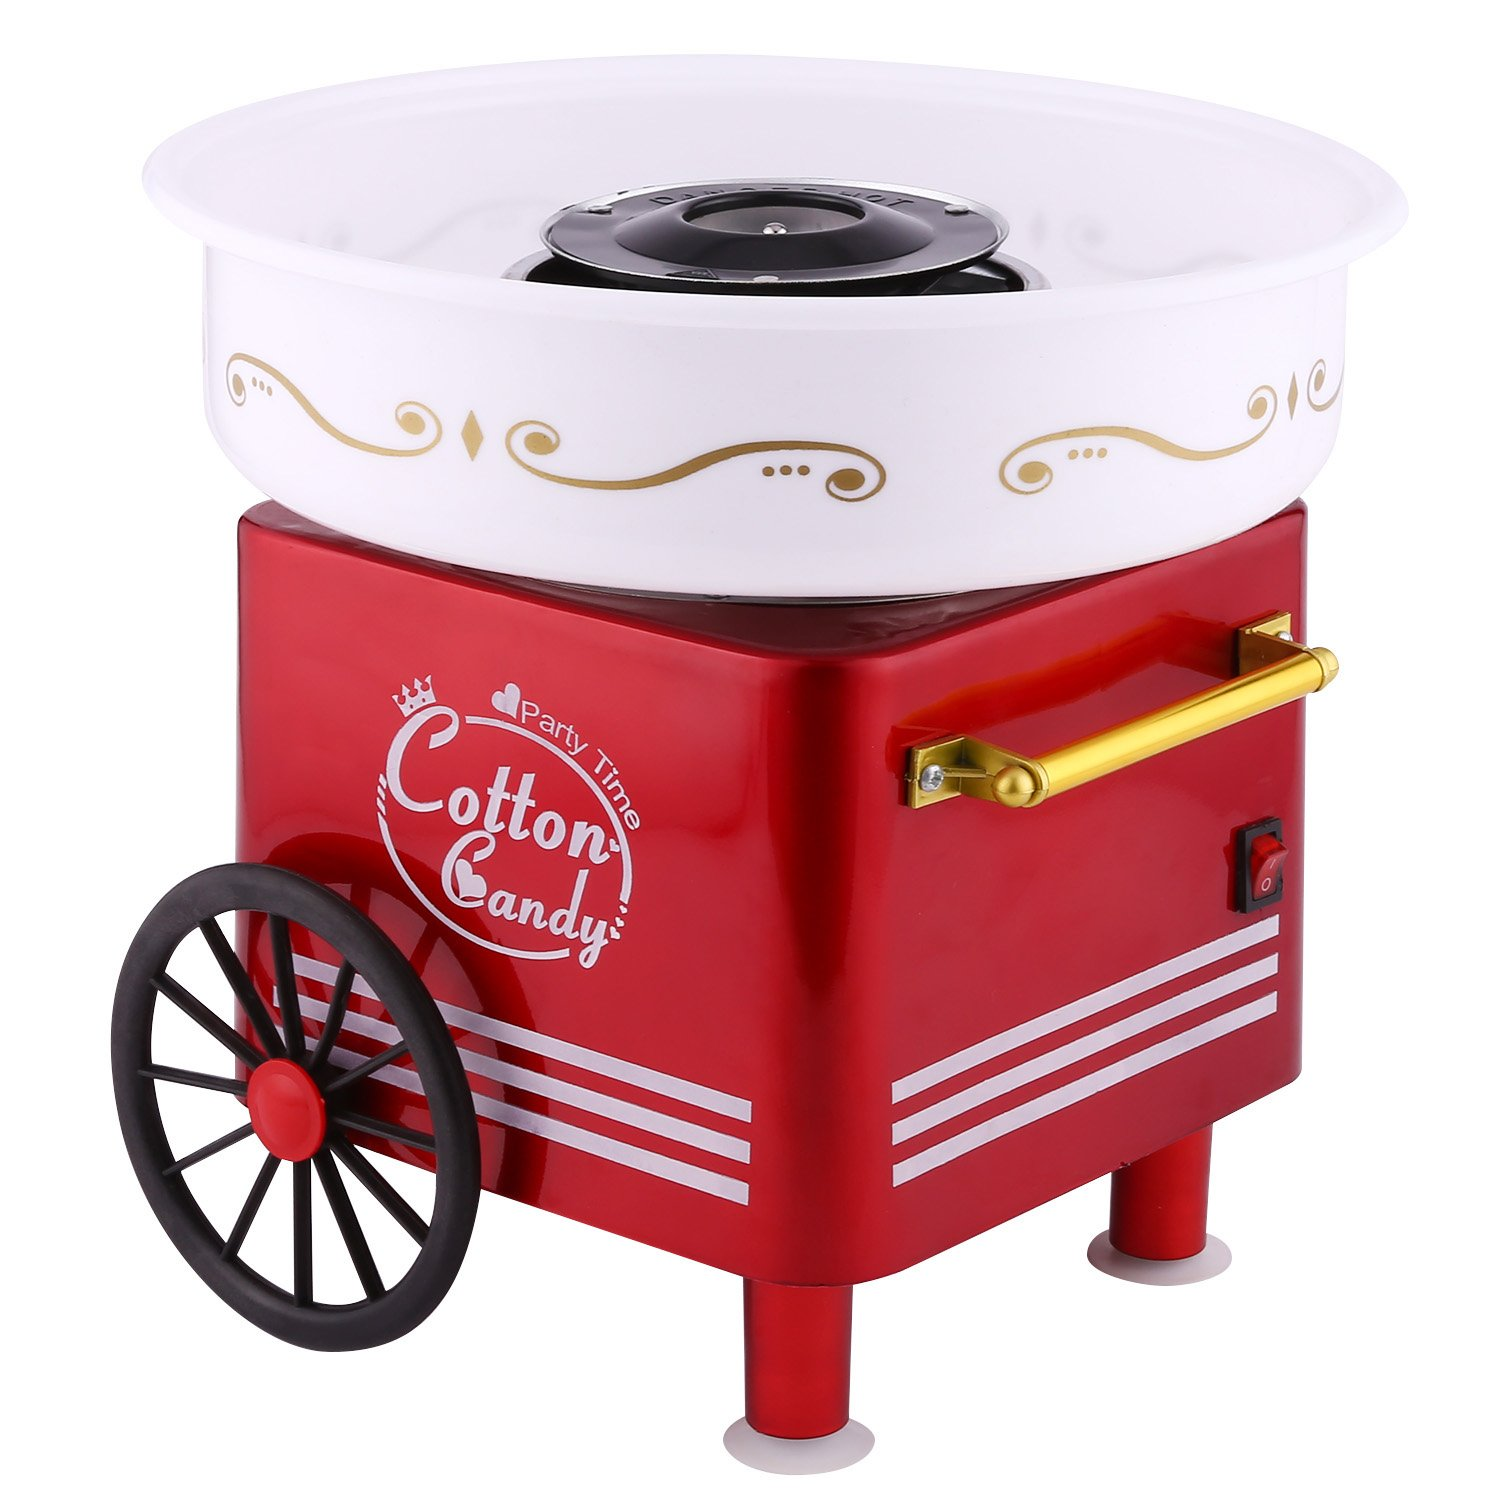 Family Party Red/Pink Stainless Steel Safe Cute Casual Cotton Candy Machine Classic Cotton Candy Maker by Sugar, SugarFree, or Hard Candy (Red) by Miageek